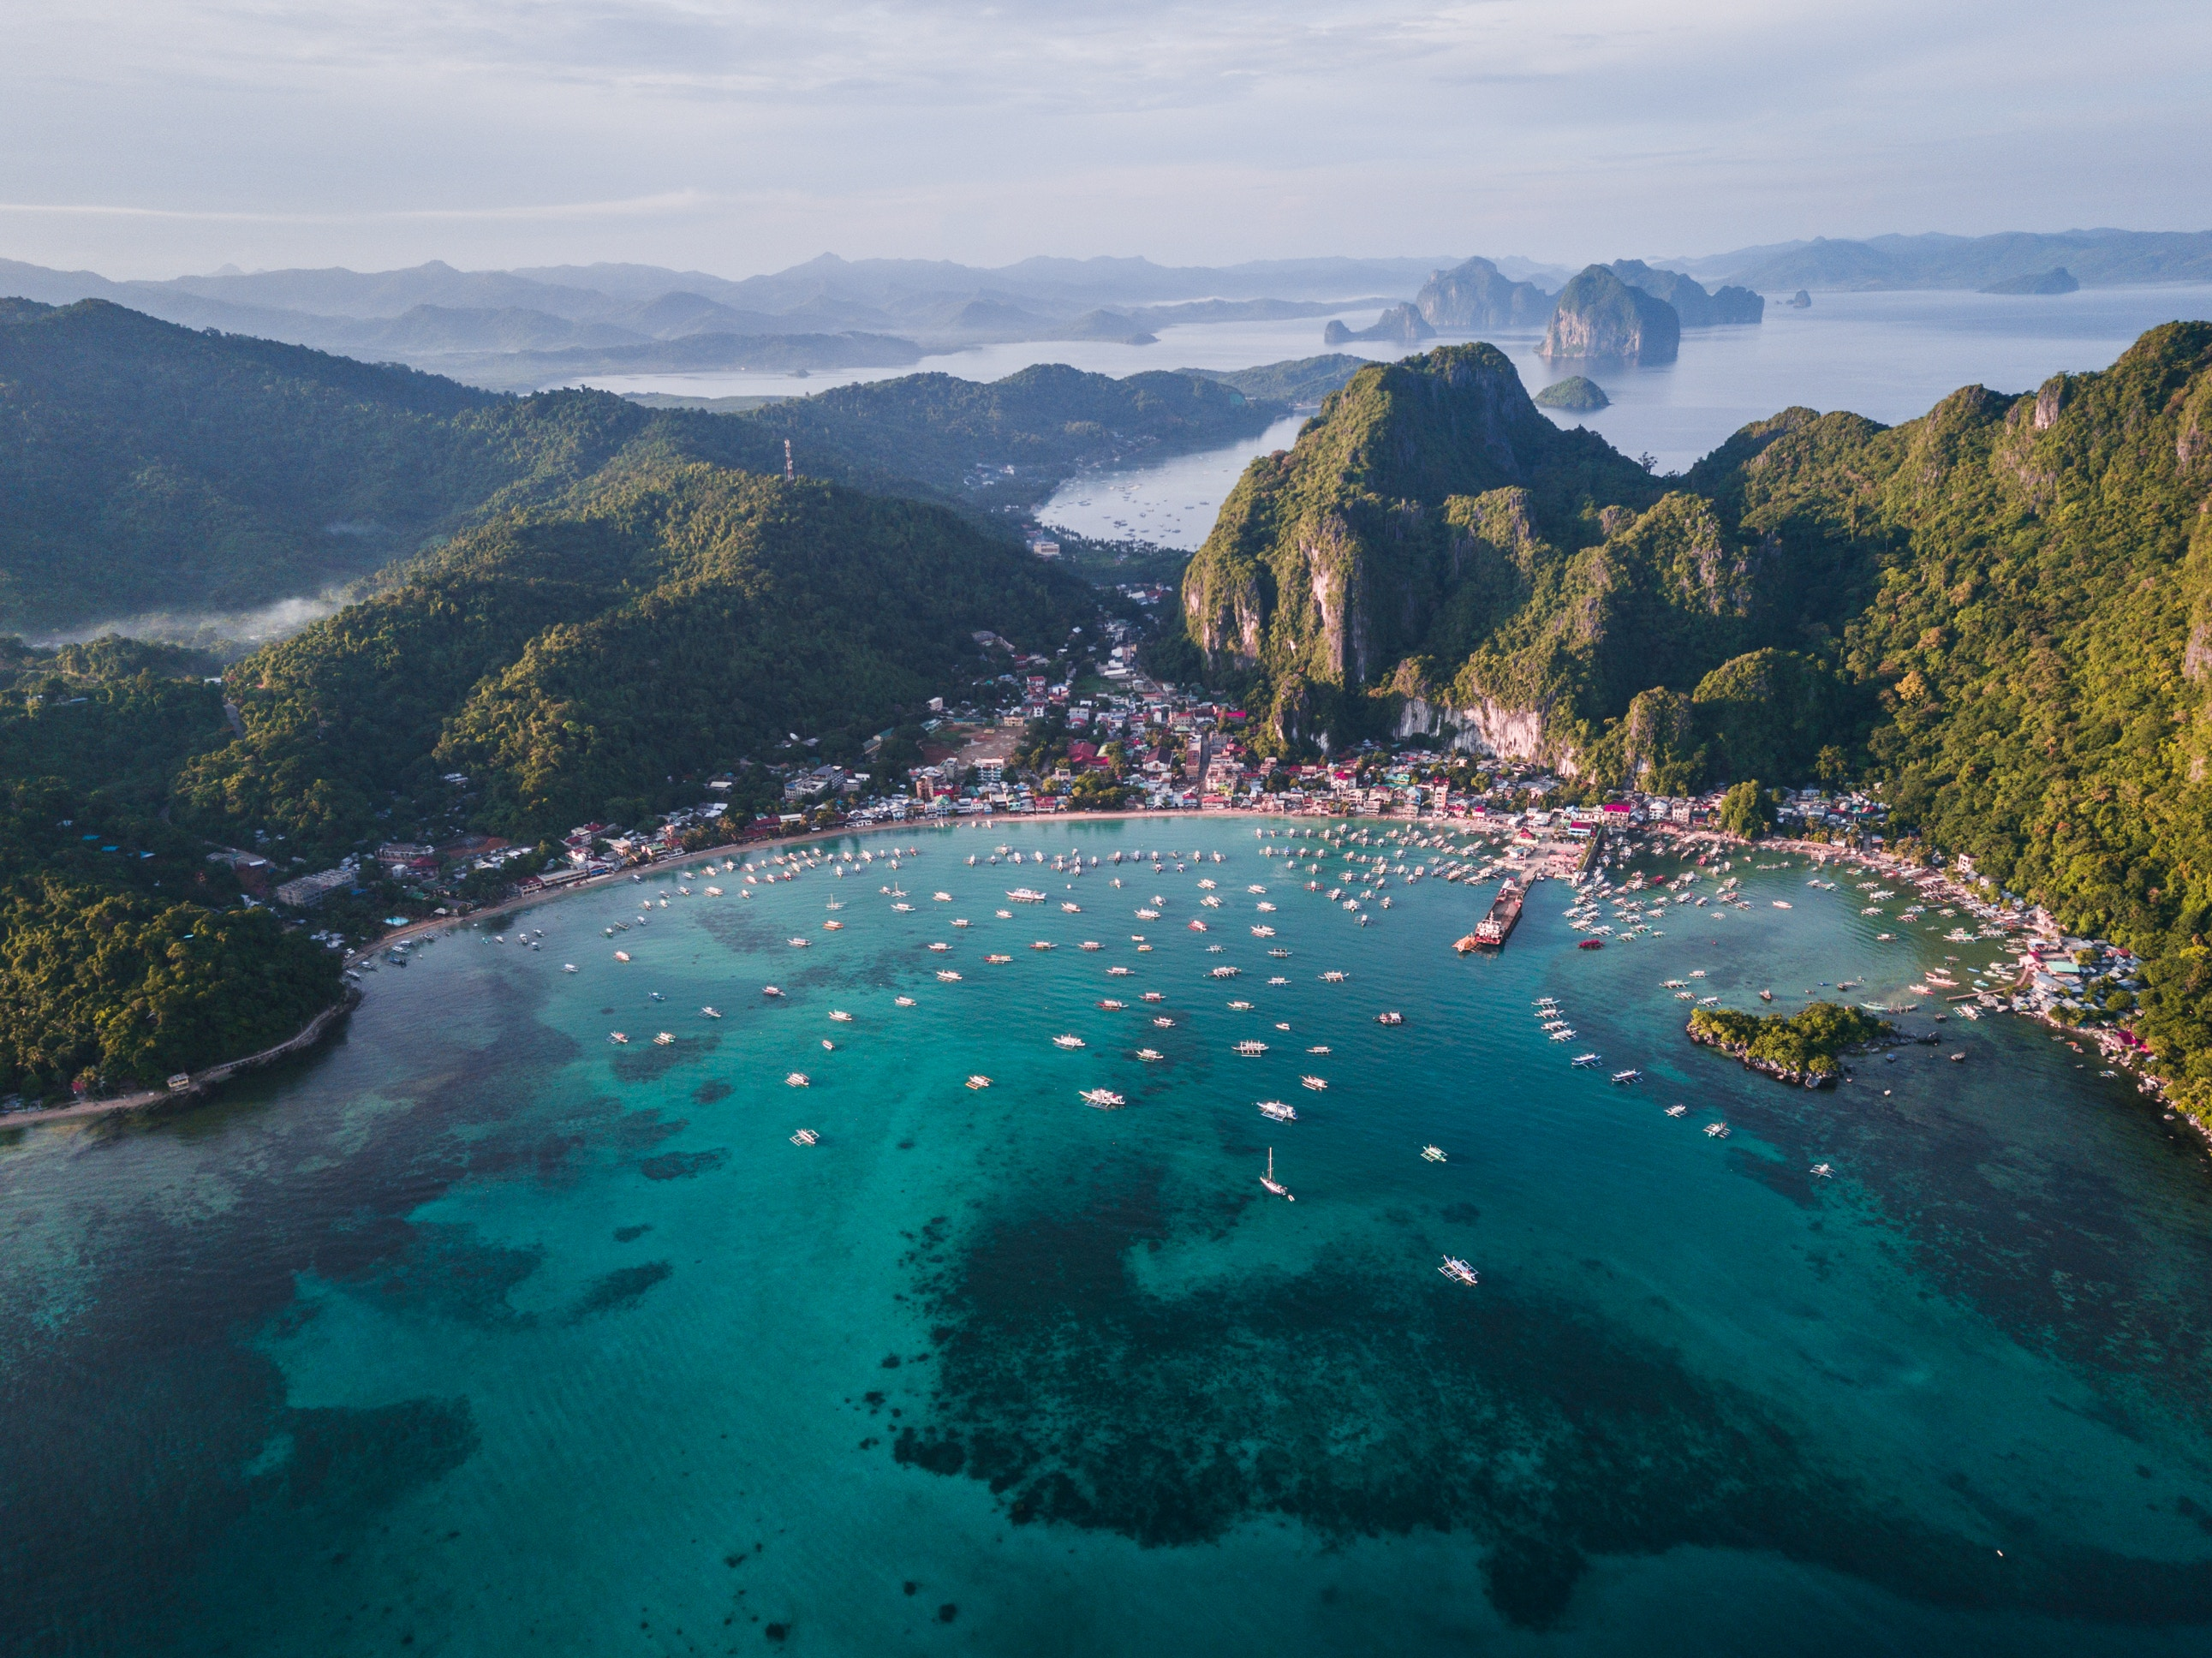 The Philippines: Explore & Fall in Love